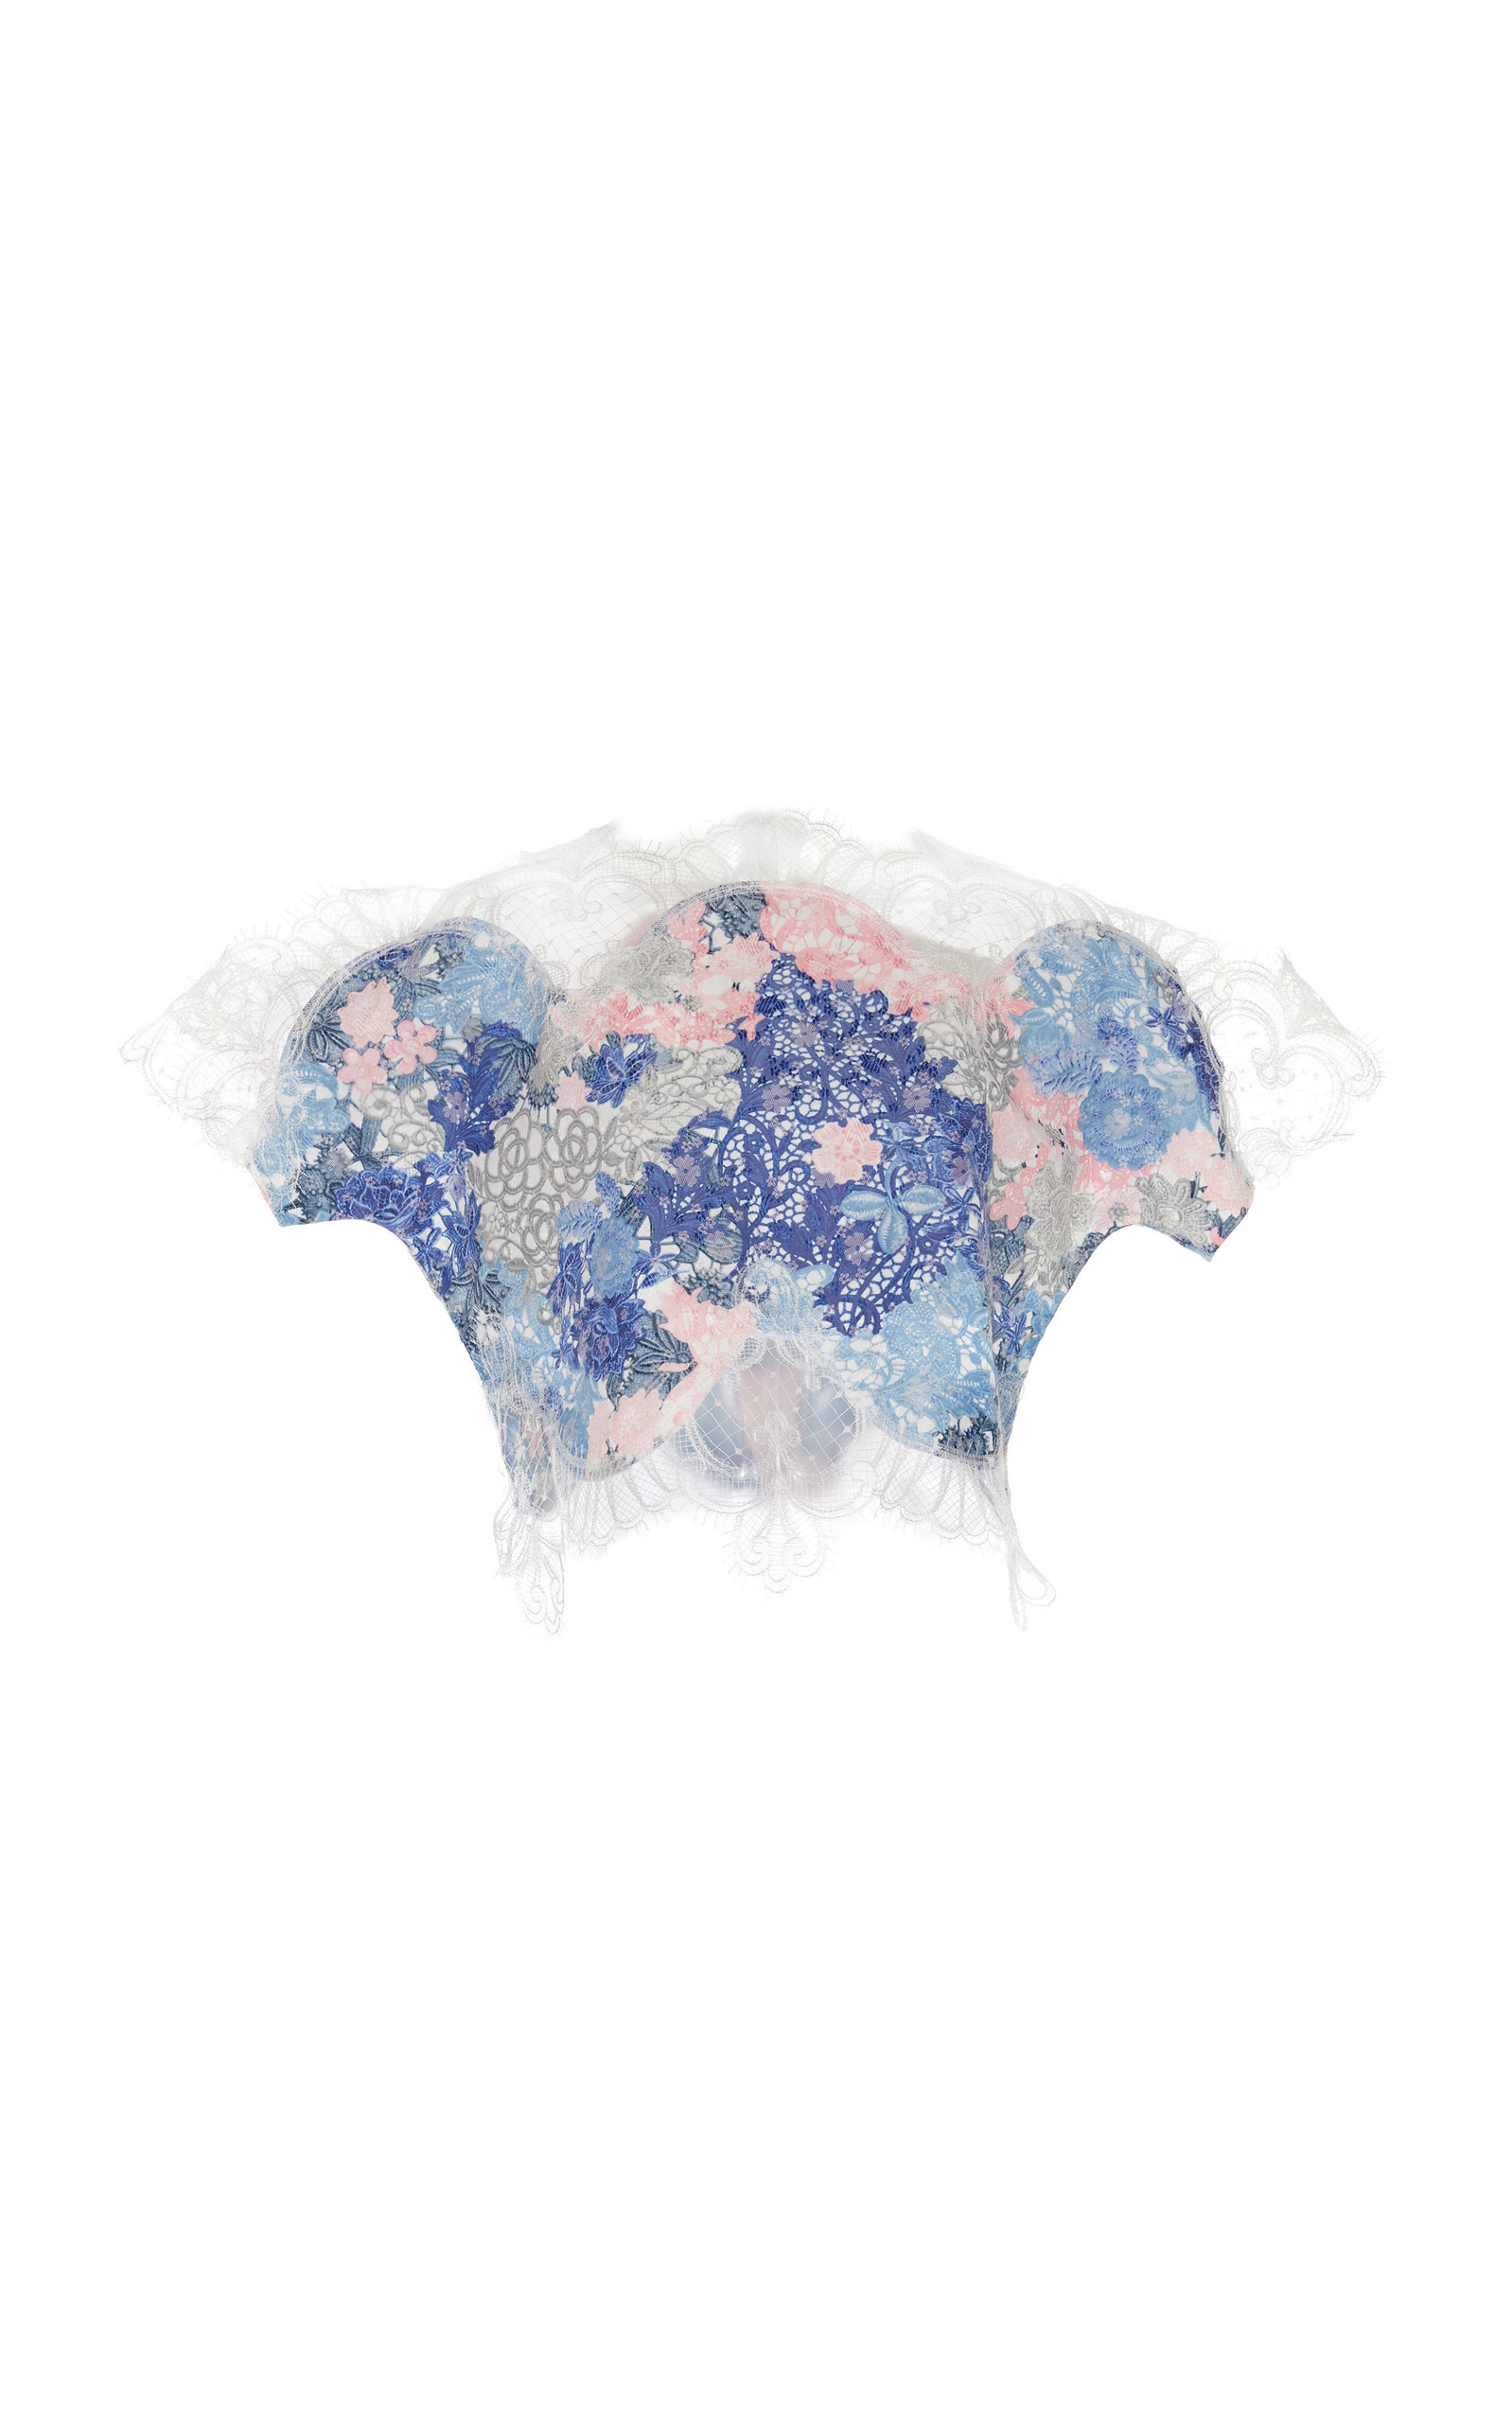 Pre Order For Sale Cheap Sale Many Kinds Of Printed Brocade Organza Top Costarellos Cheap Discount Sale Discount Recommend Buy Cheap Choice shK4OHYNEc